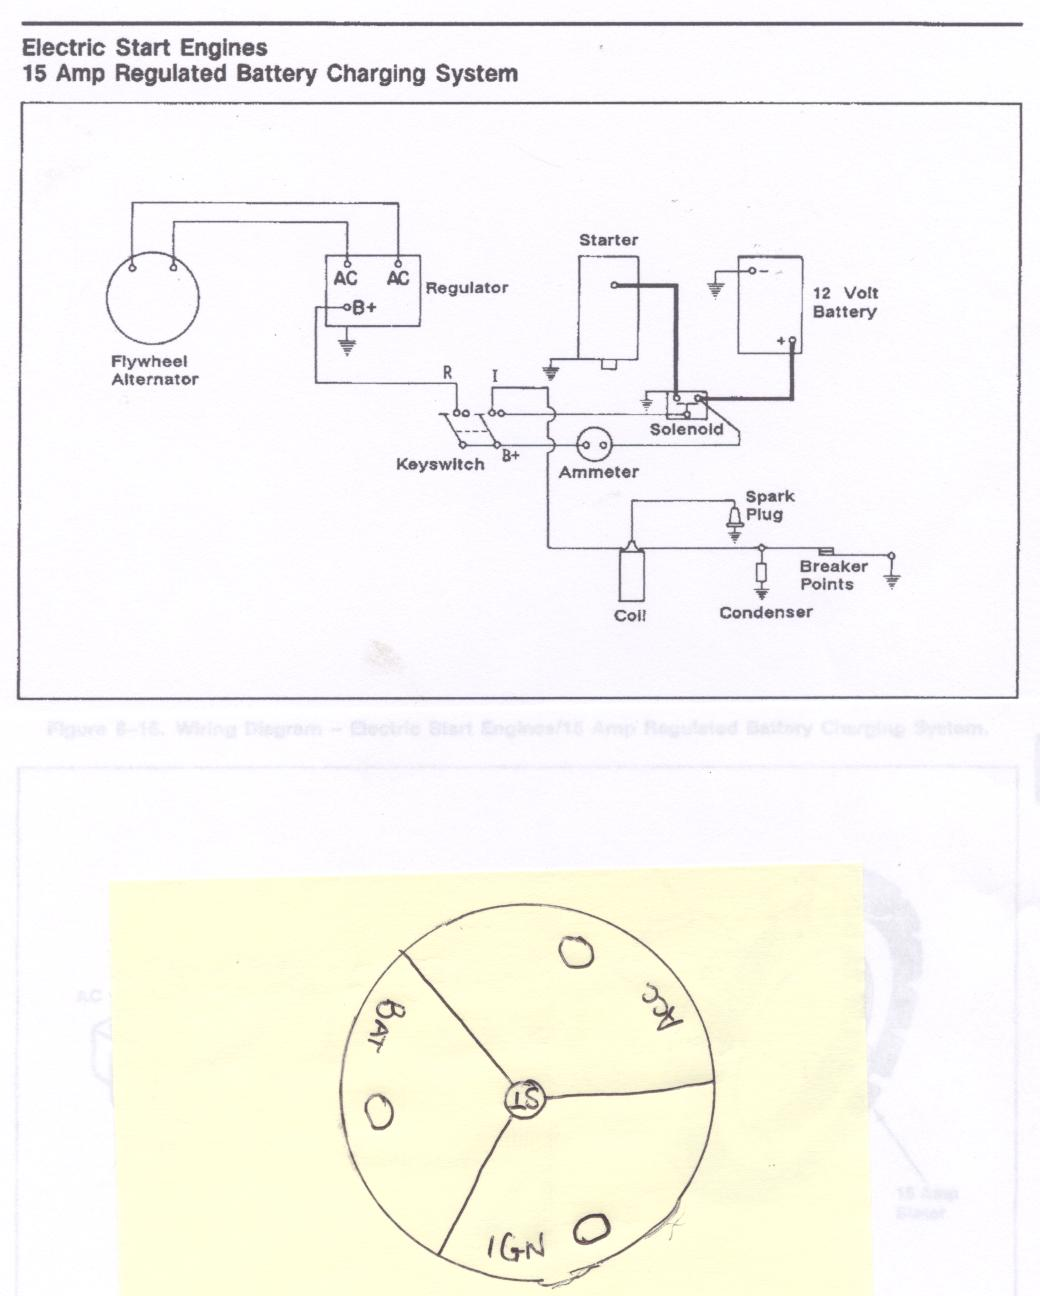 Ford Tractor Ignition Diagram Another Blog About Wiring 8n 2000 Free Engine Image For User